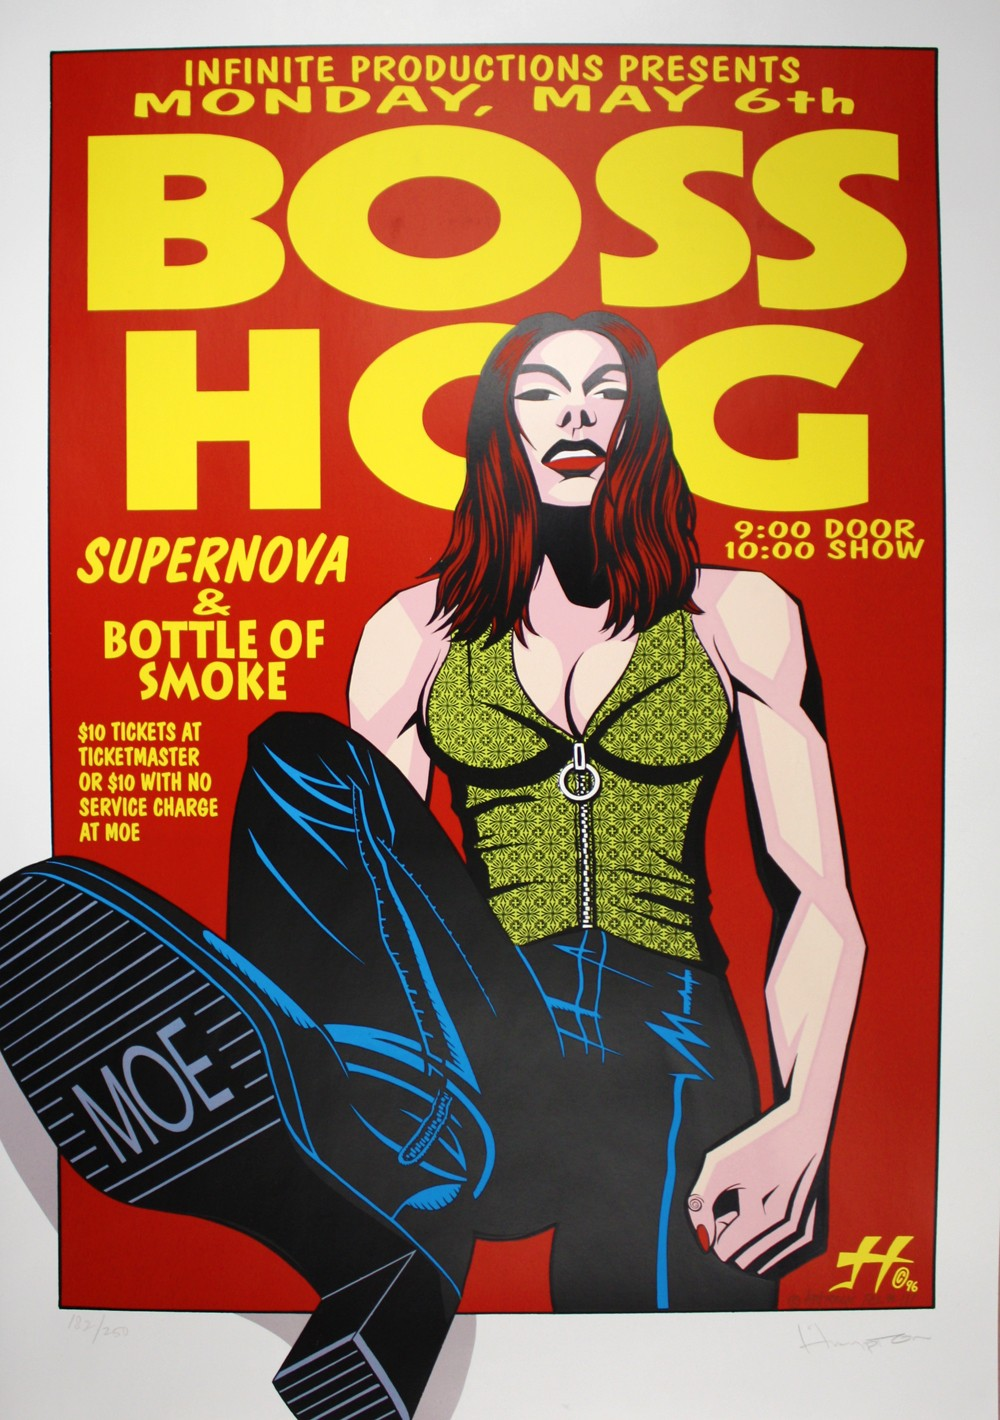 Boss Hog - Moe, Seattle, WA, US (6 May 1996) - Hampton